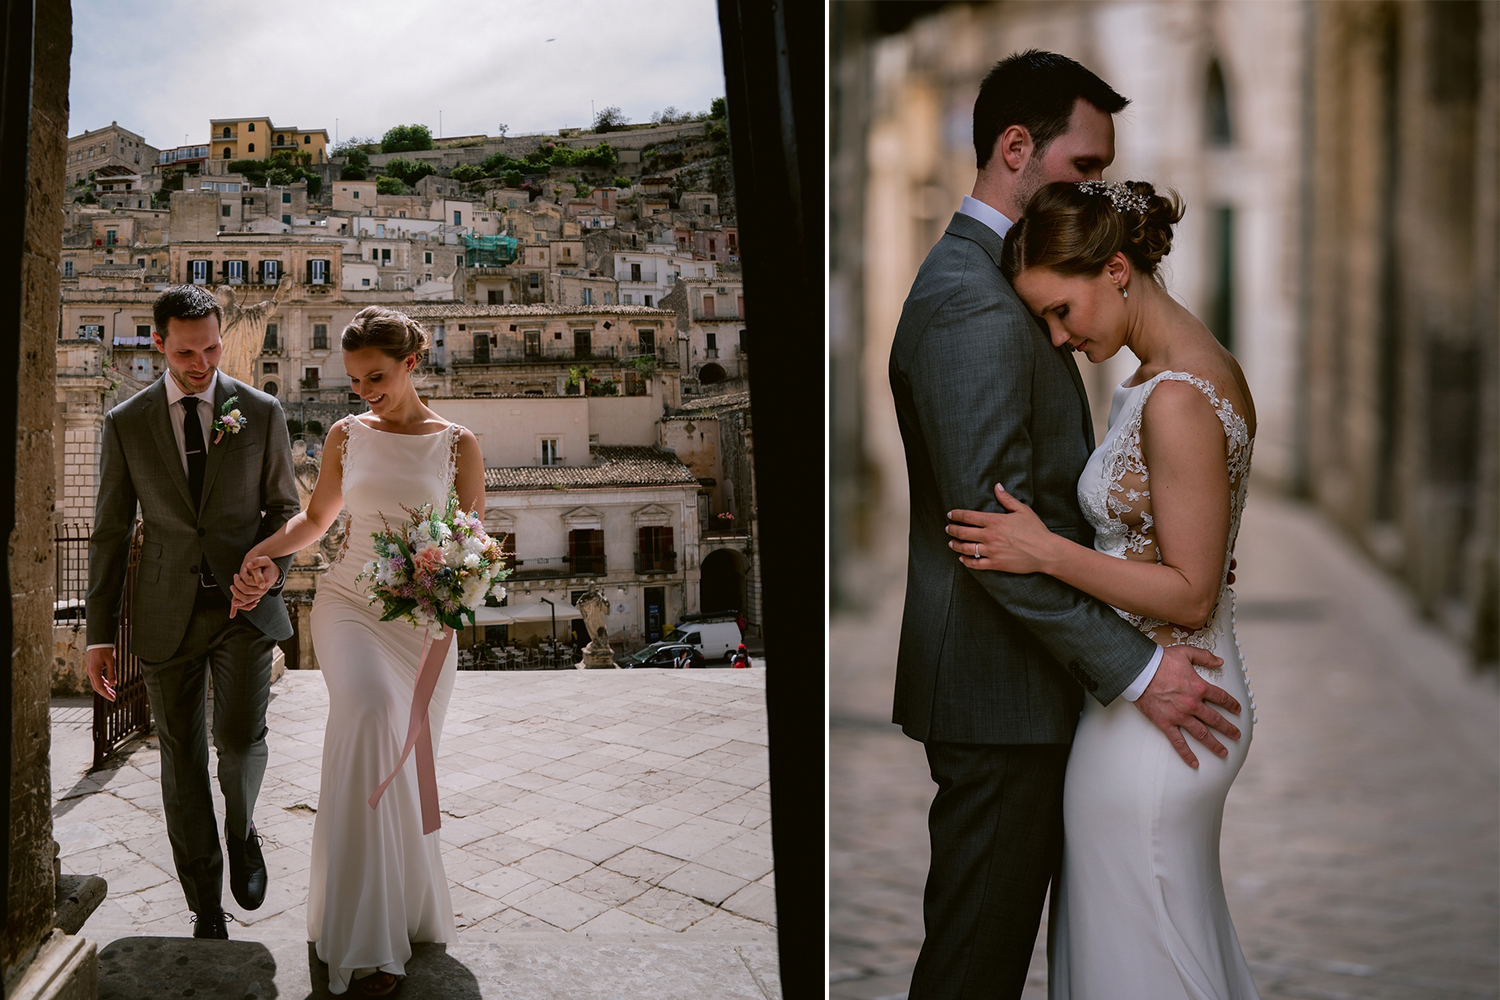 Sam and Adam, an intimate Canadian wedding in Sicily